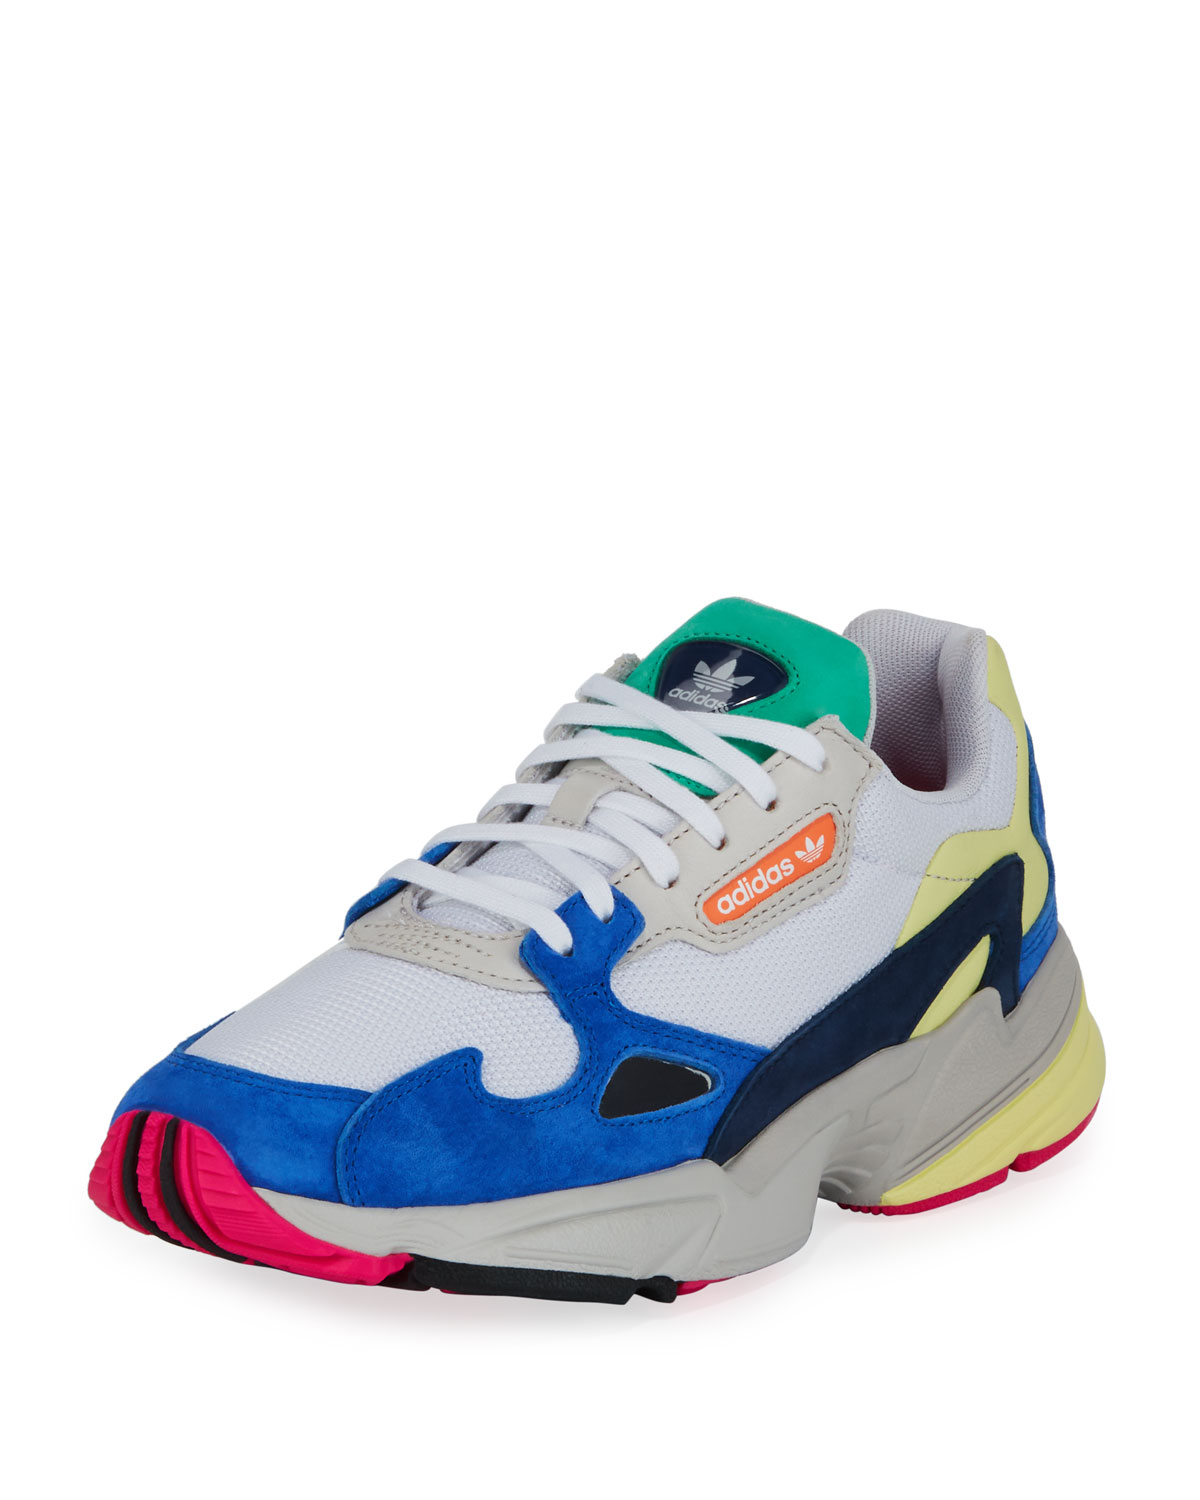 promo code 846c0 06cb4 Adidas Falcon Women s Mixed-Media Sneaker